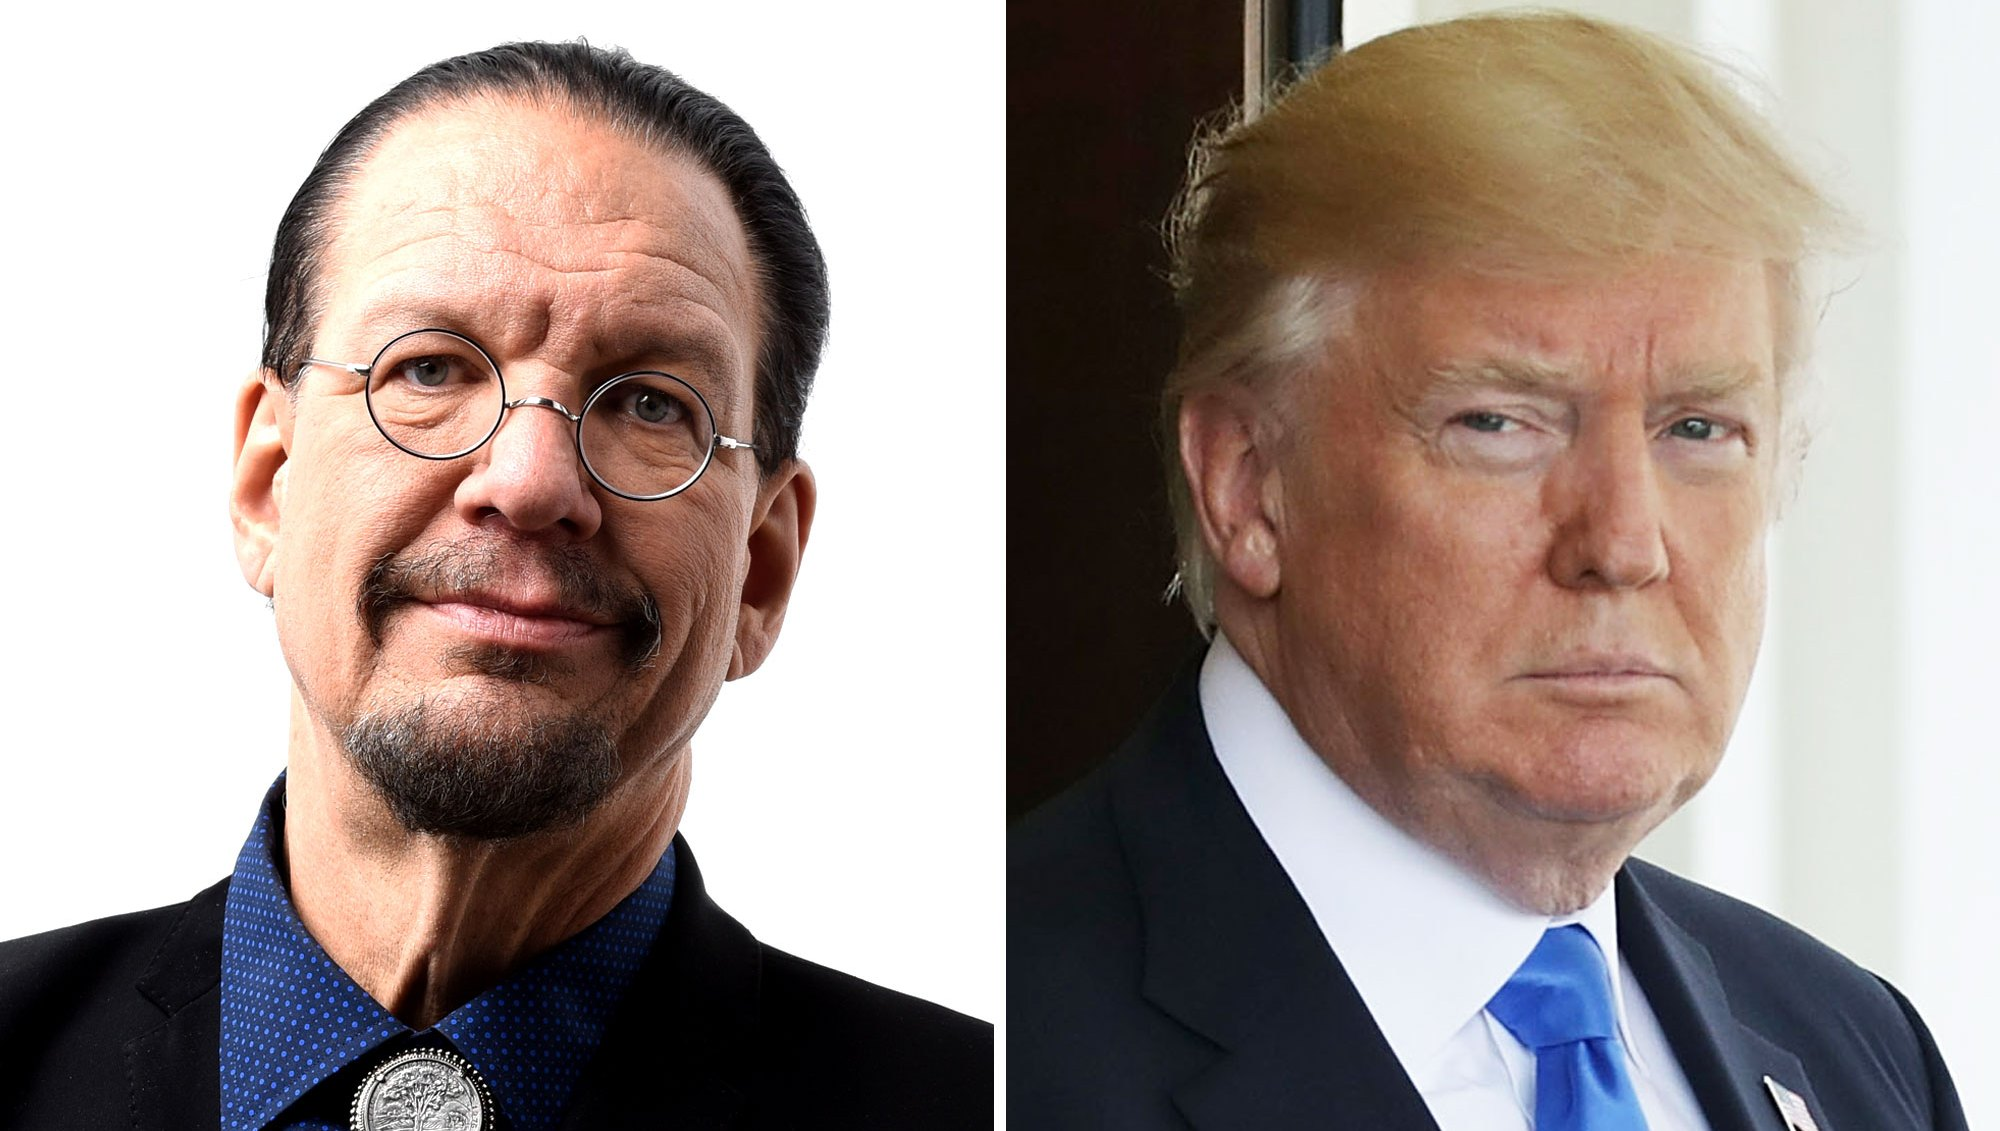 Penn Jillette and Donald Trump racially insensitive things the apprentice